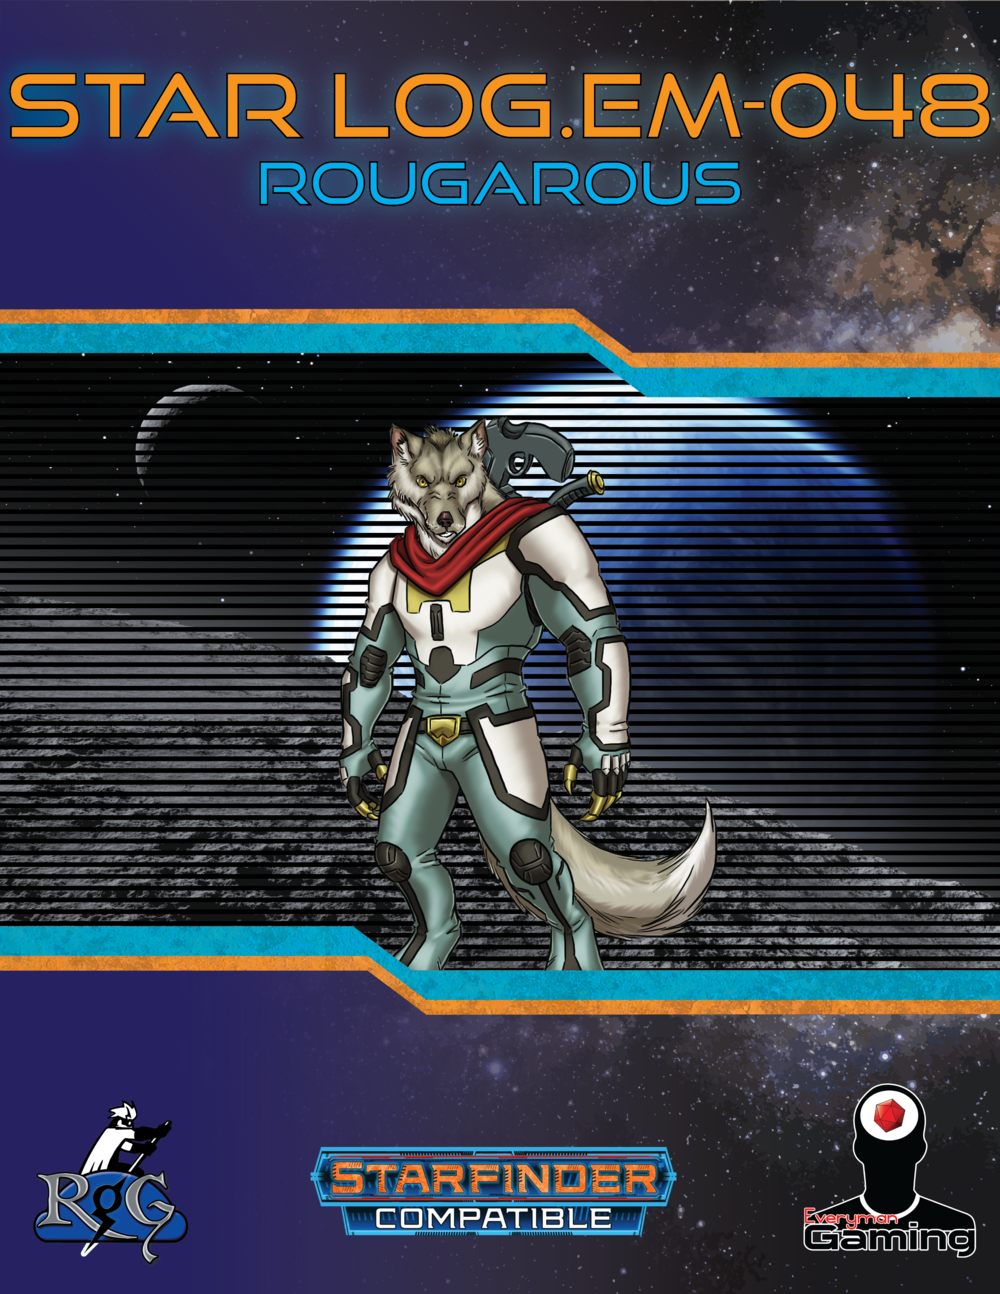 SF048 Rougarou-01.png